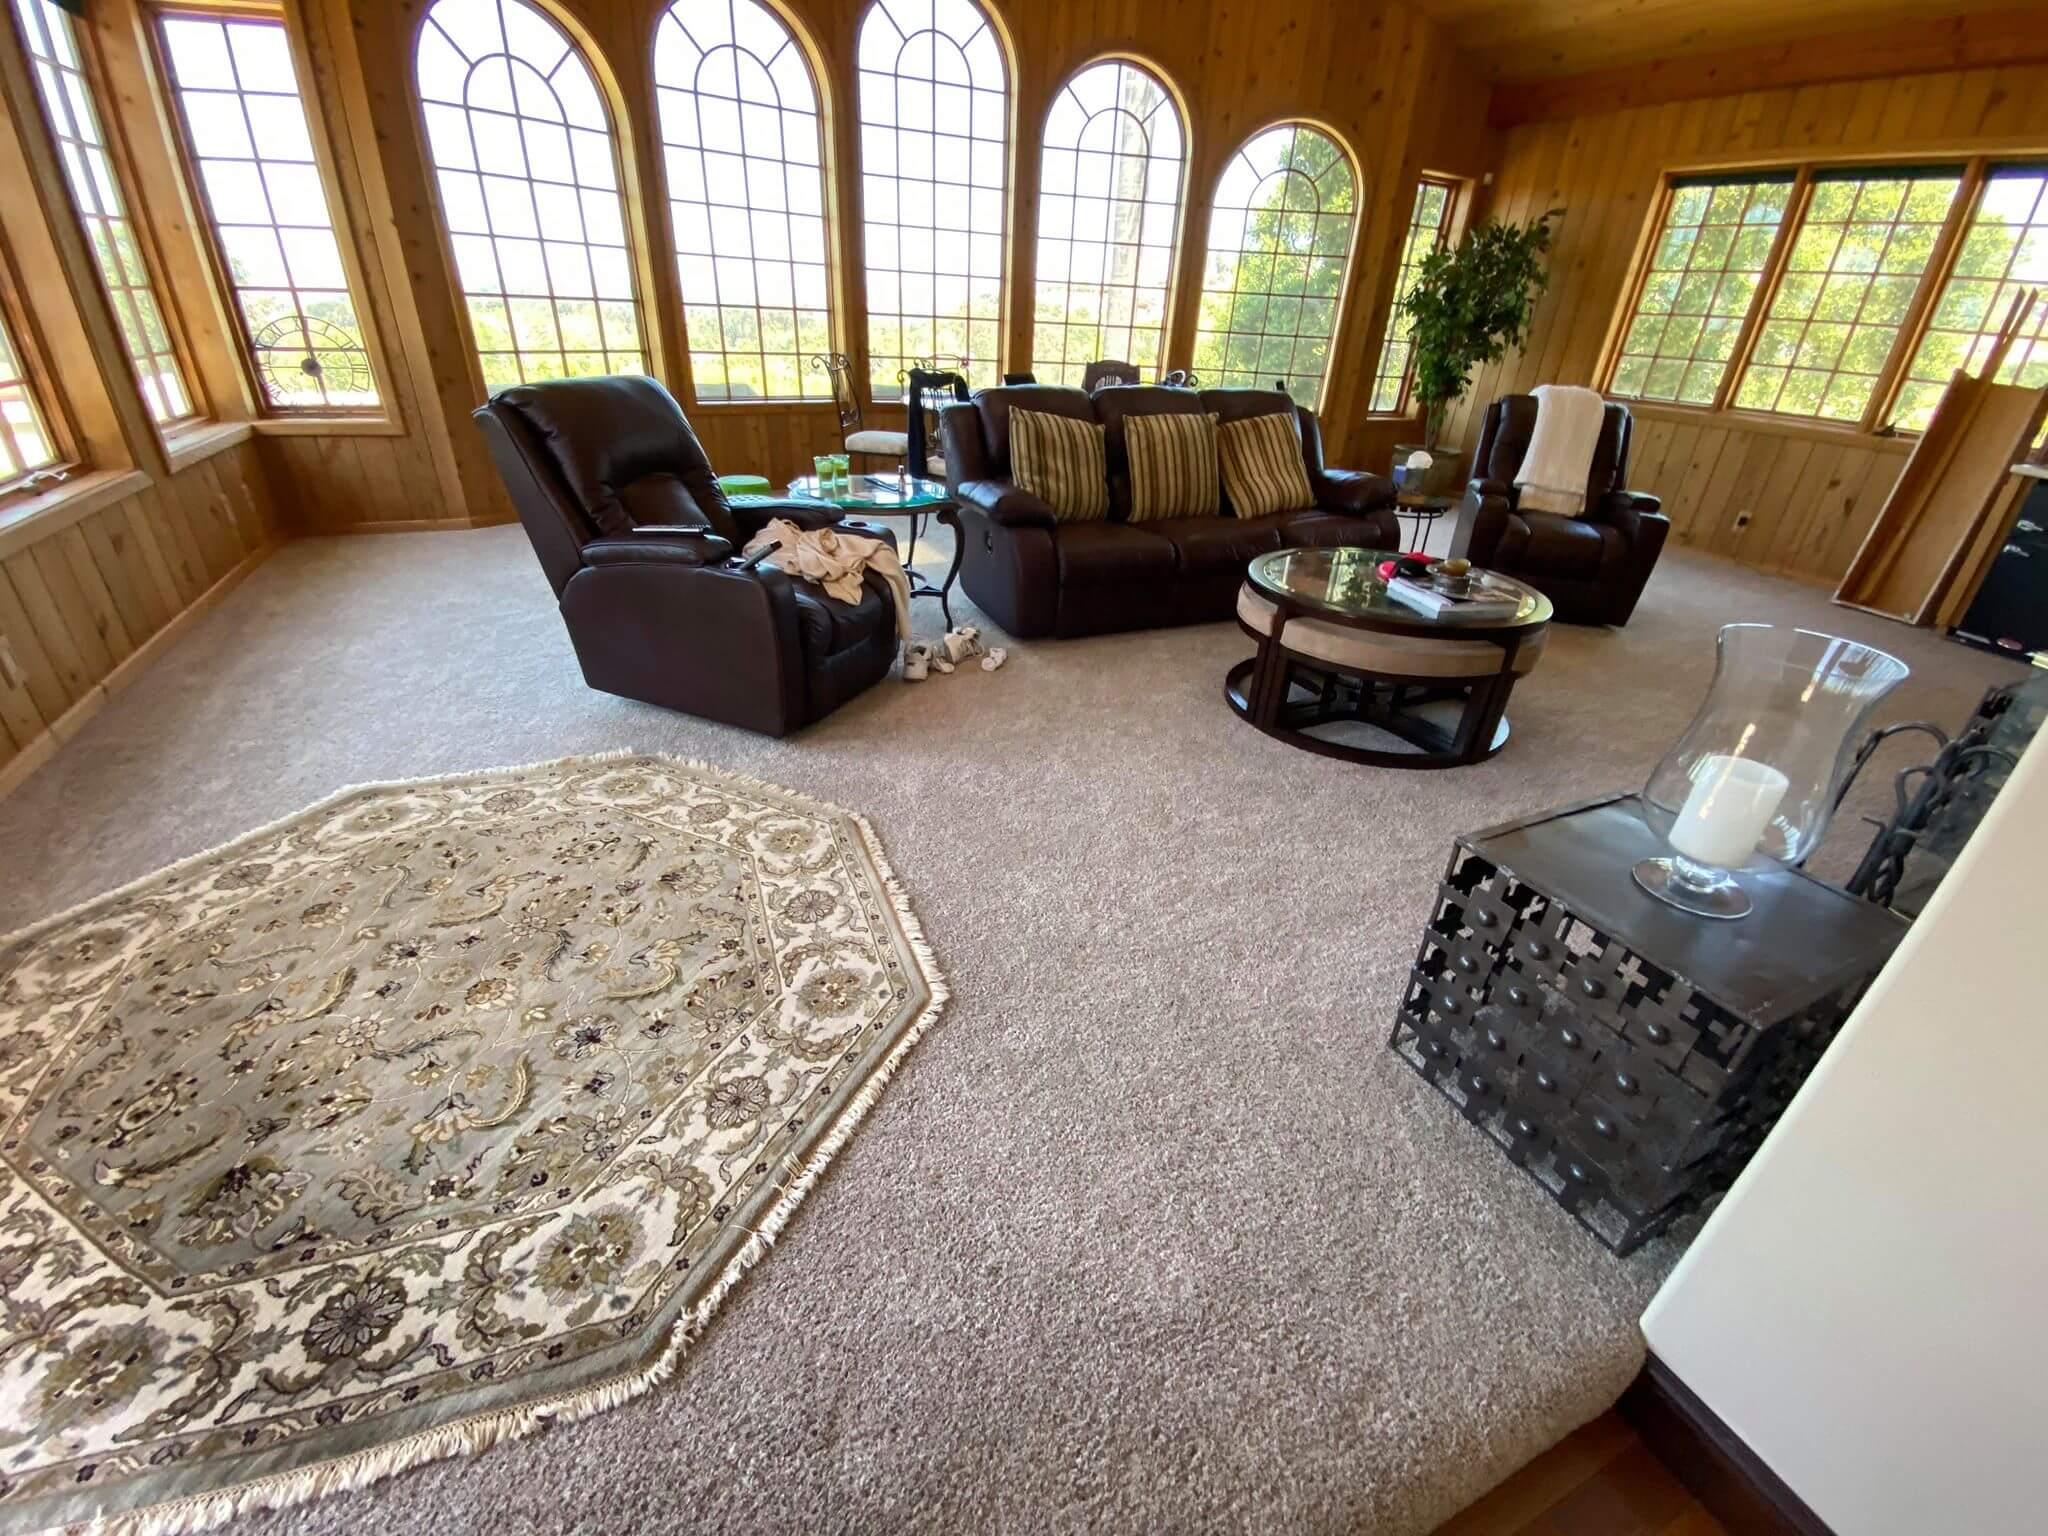 Carpet Cleaning Services San Diego